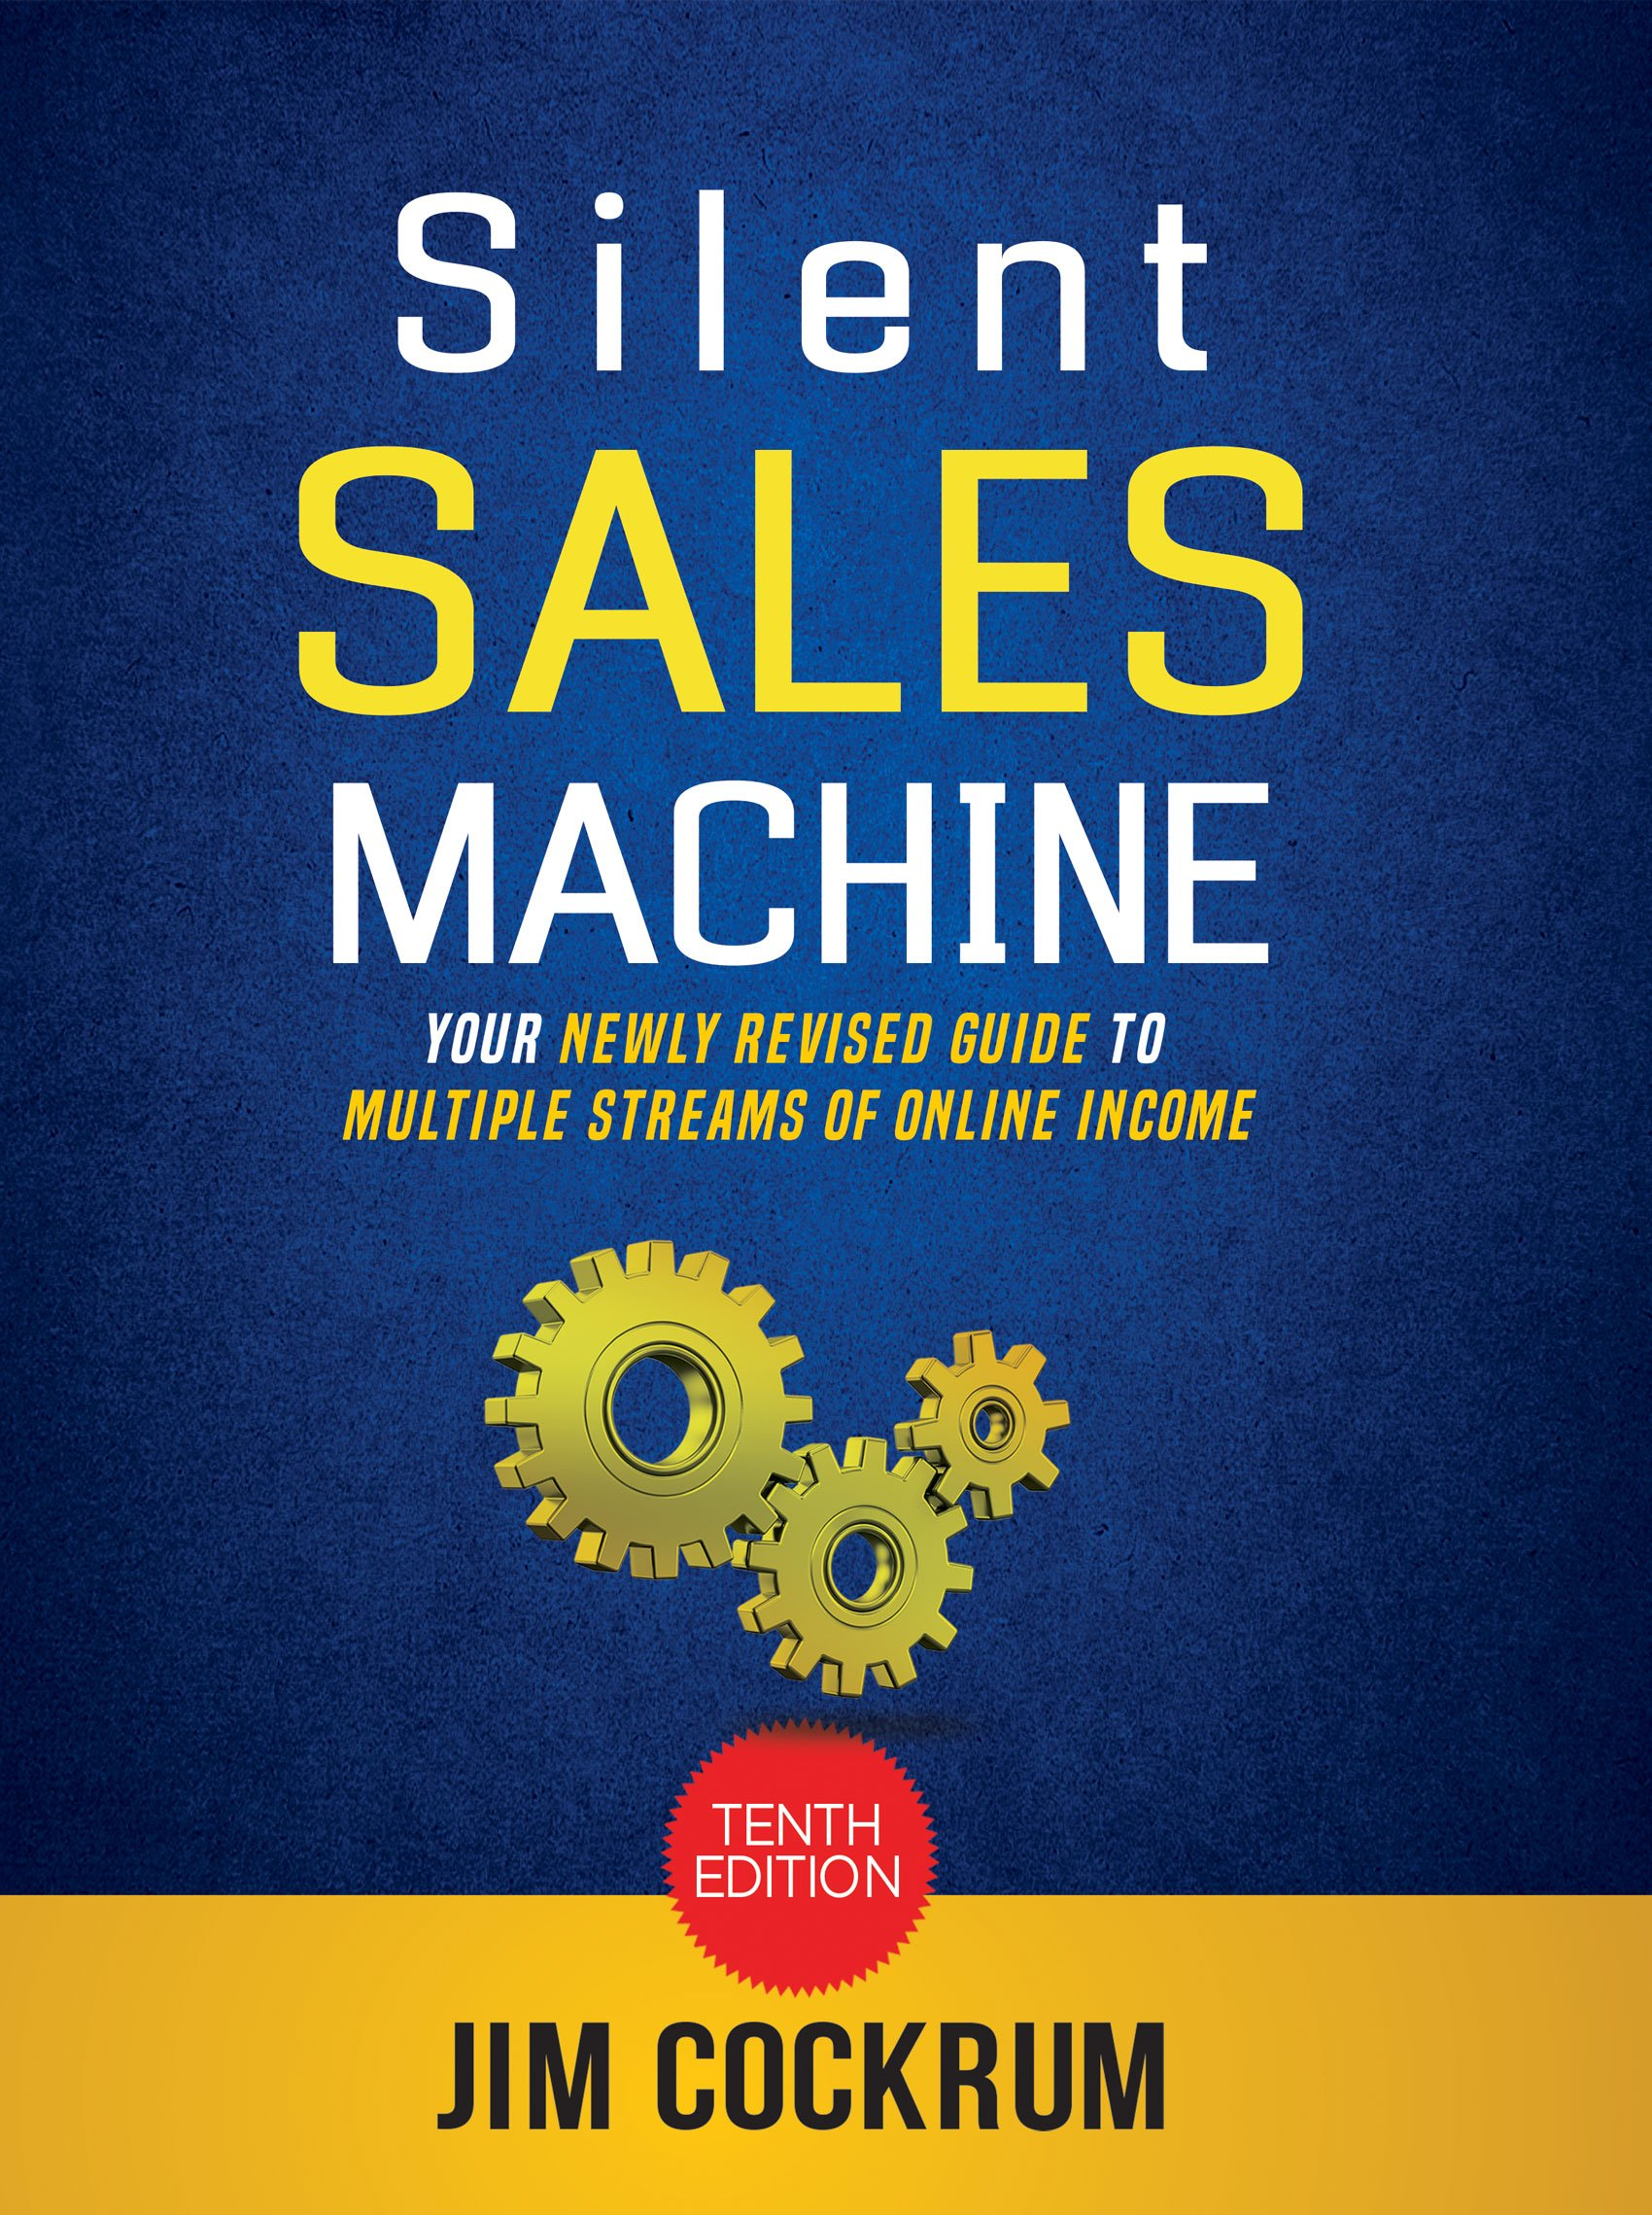 Silent Sales Machine 10.0   Your Newly Revised Guide To Multiple Streams Of Income Online  Includes Amazon FBA EBay Audience Growth And More   English Edition